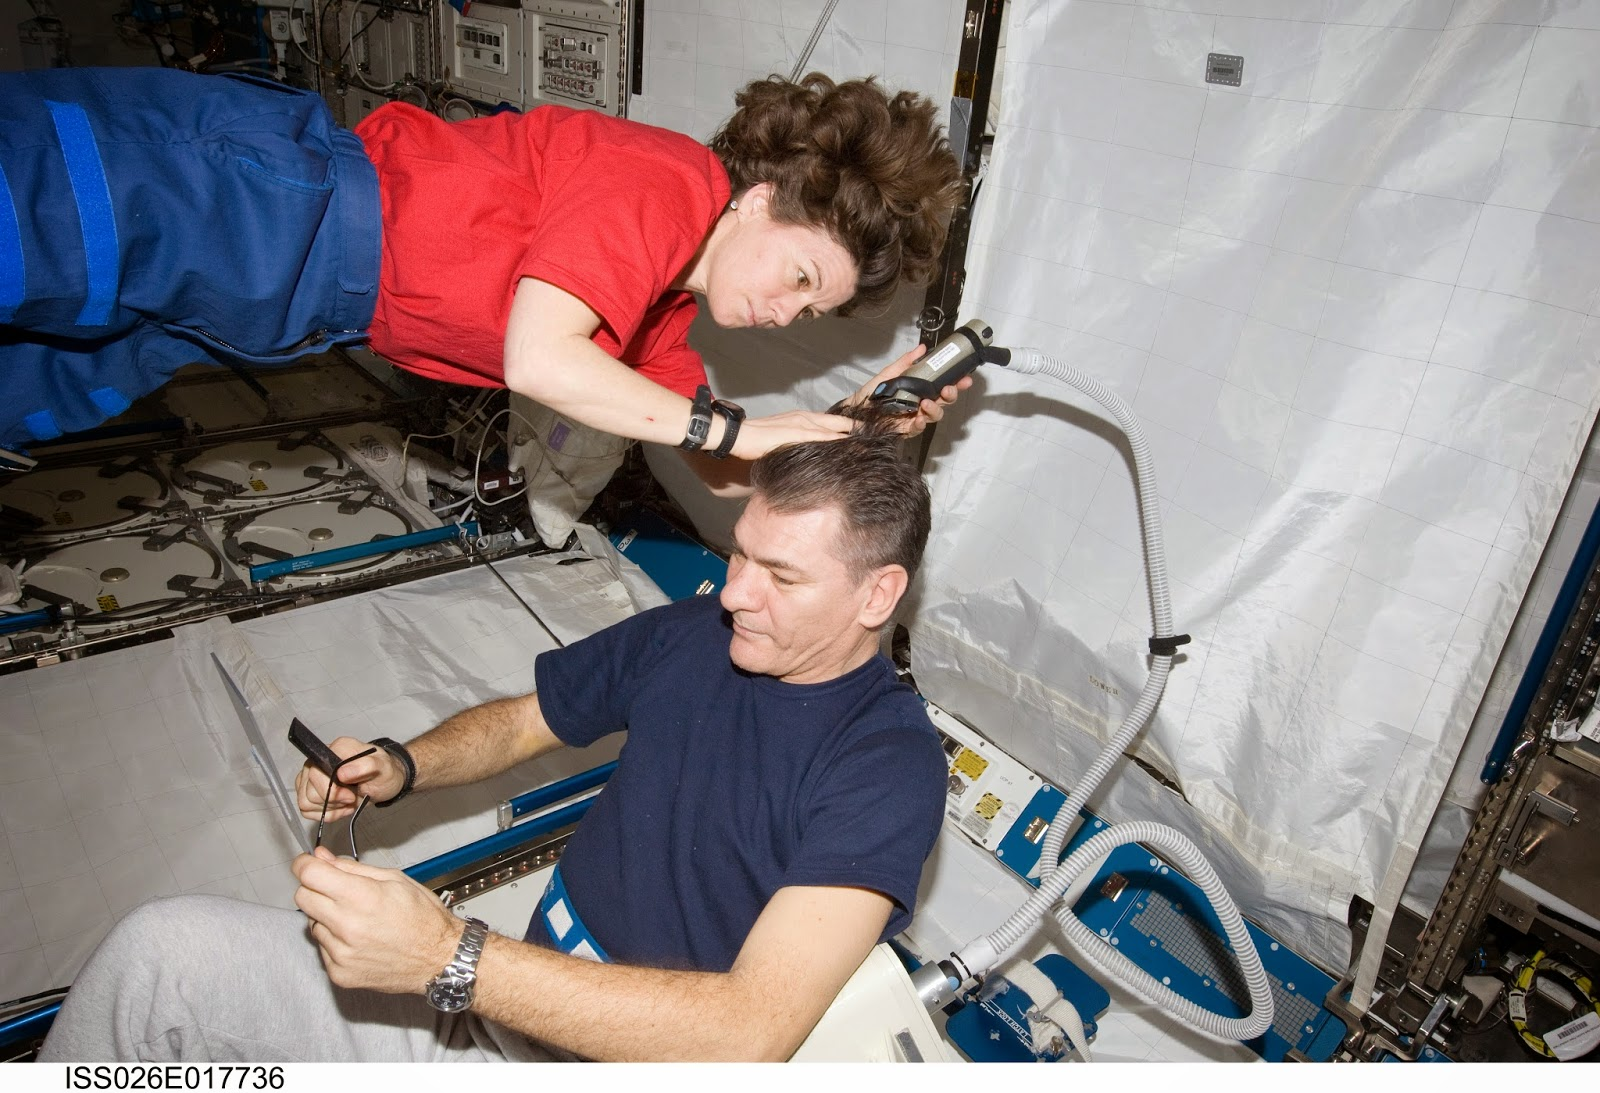 Space 'n' Bathers: How Astronauts Keep Themselves Clean Aboard the